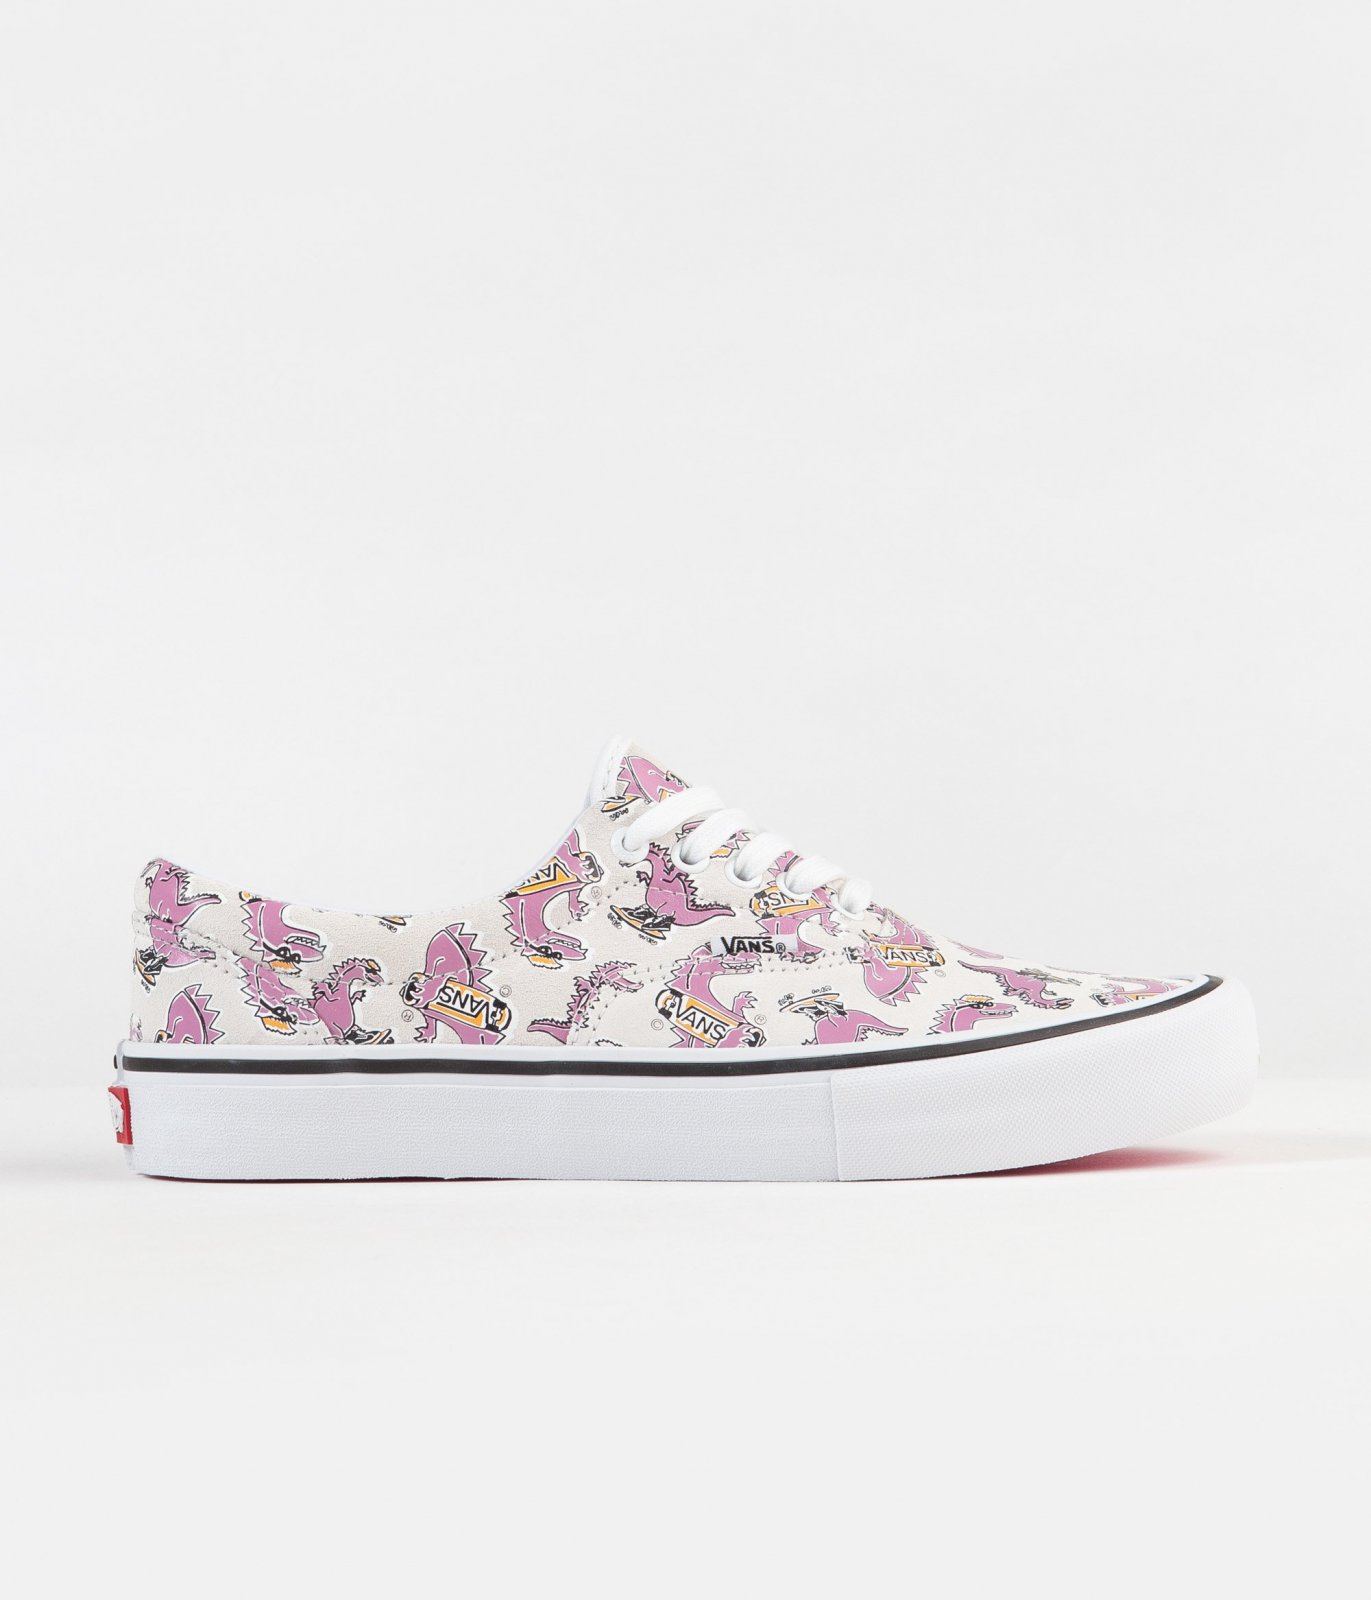 vans-era-pro-shoes-vanosaur-whitevans-era-pro-shoes-vanosaur-white-1.jpg